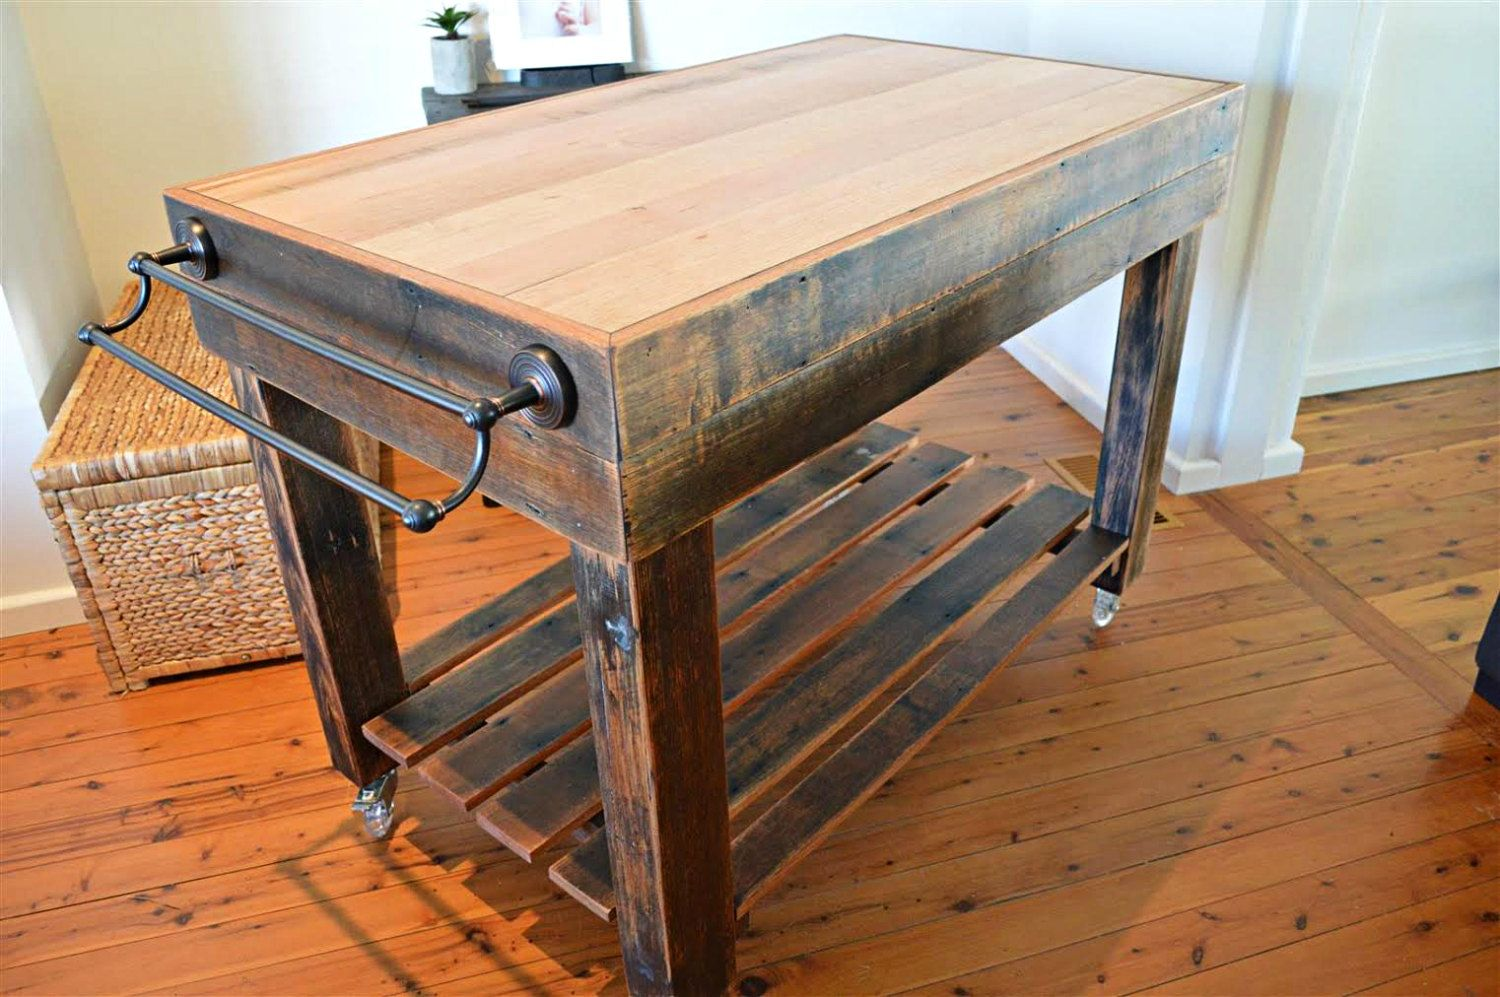 Butchers Block Style Island Bench Rustic On Castor Wheels Inbuilt Knife Block And Towel Rail Made To Order In Australia Kitchen Butcher Block Island Diy Kitchen Island Bench Rustic Kitchen Island